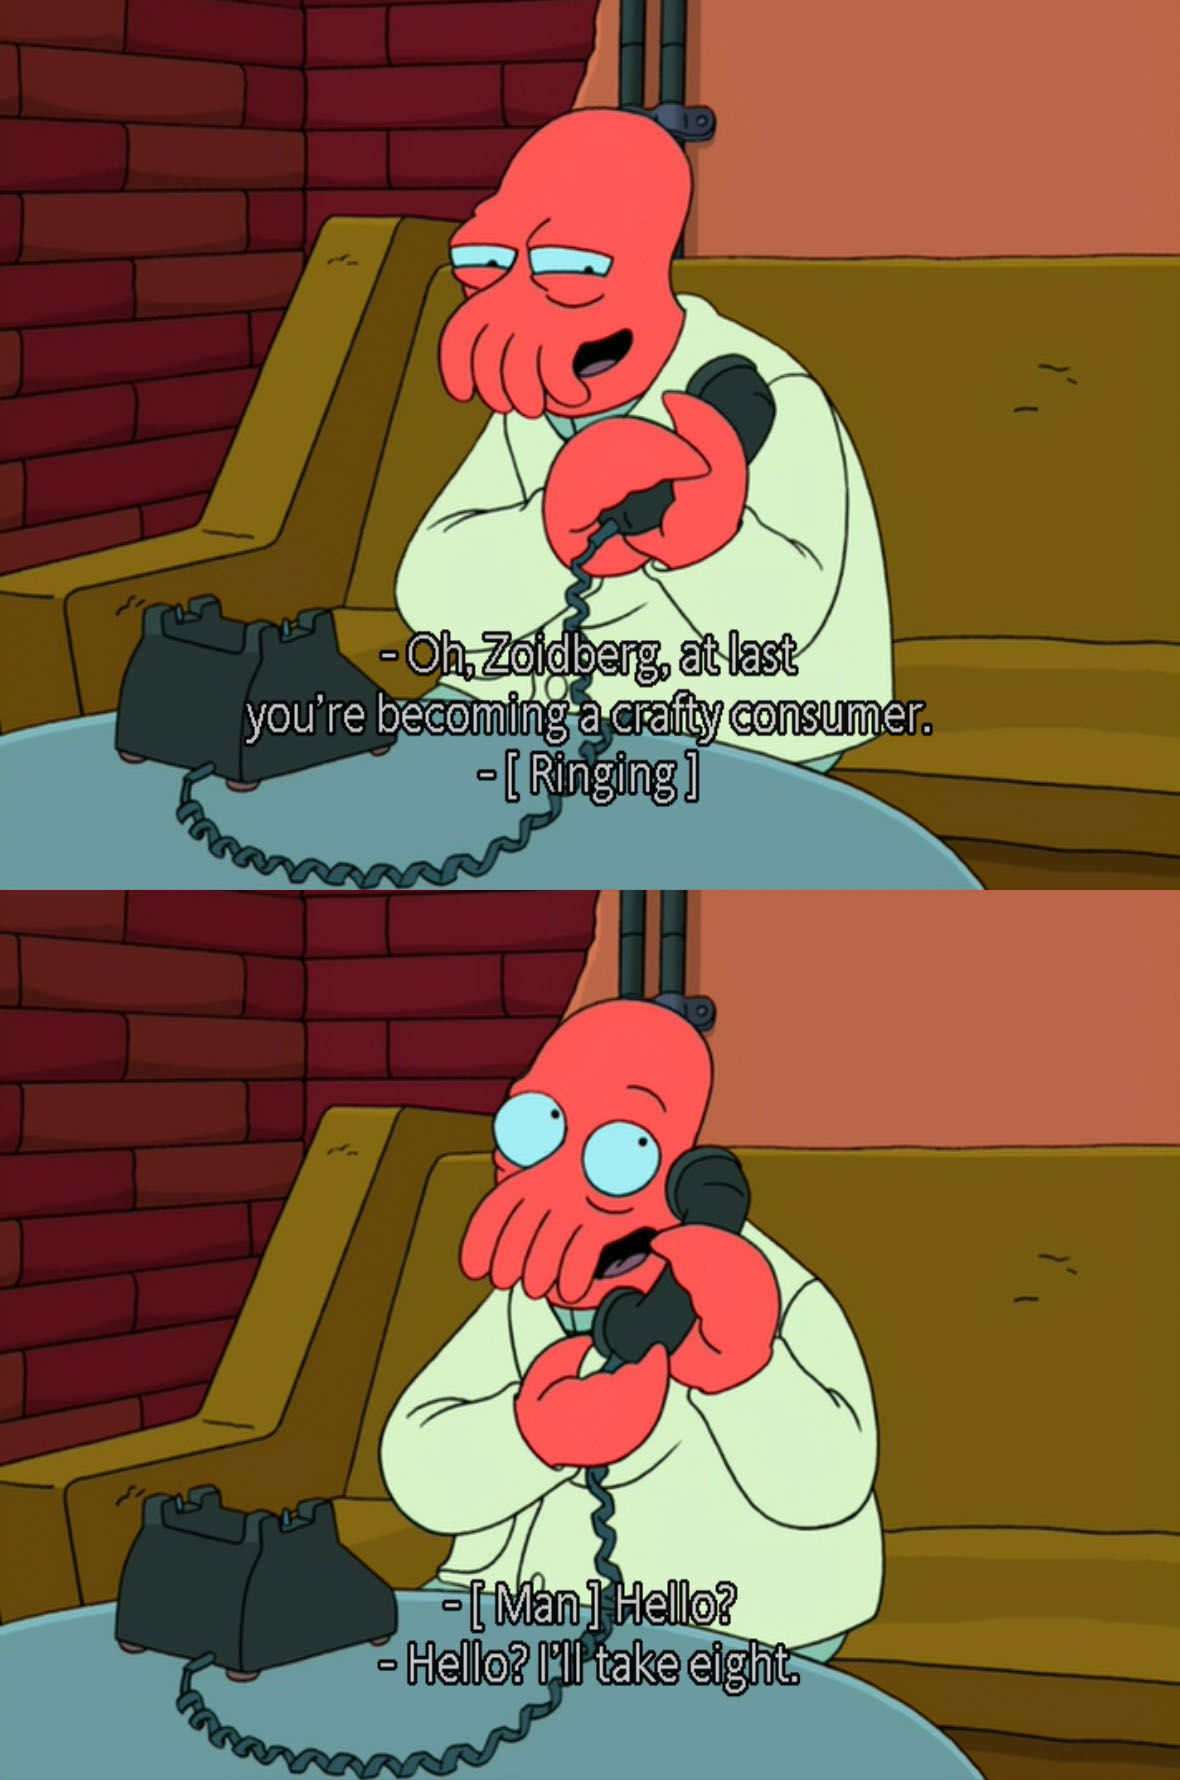 Zoidberg Is Learning How To Be A Crafty Consumer Of Products On The